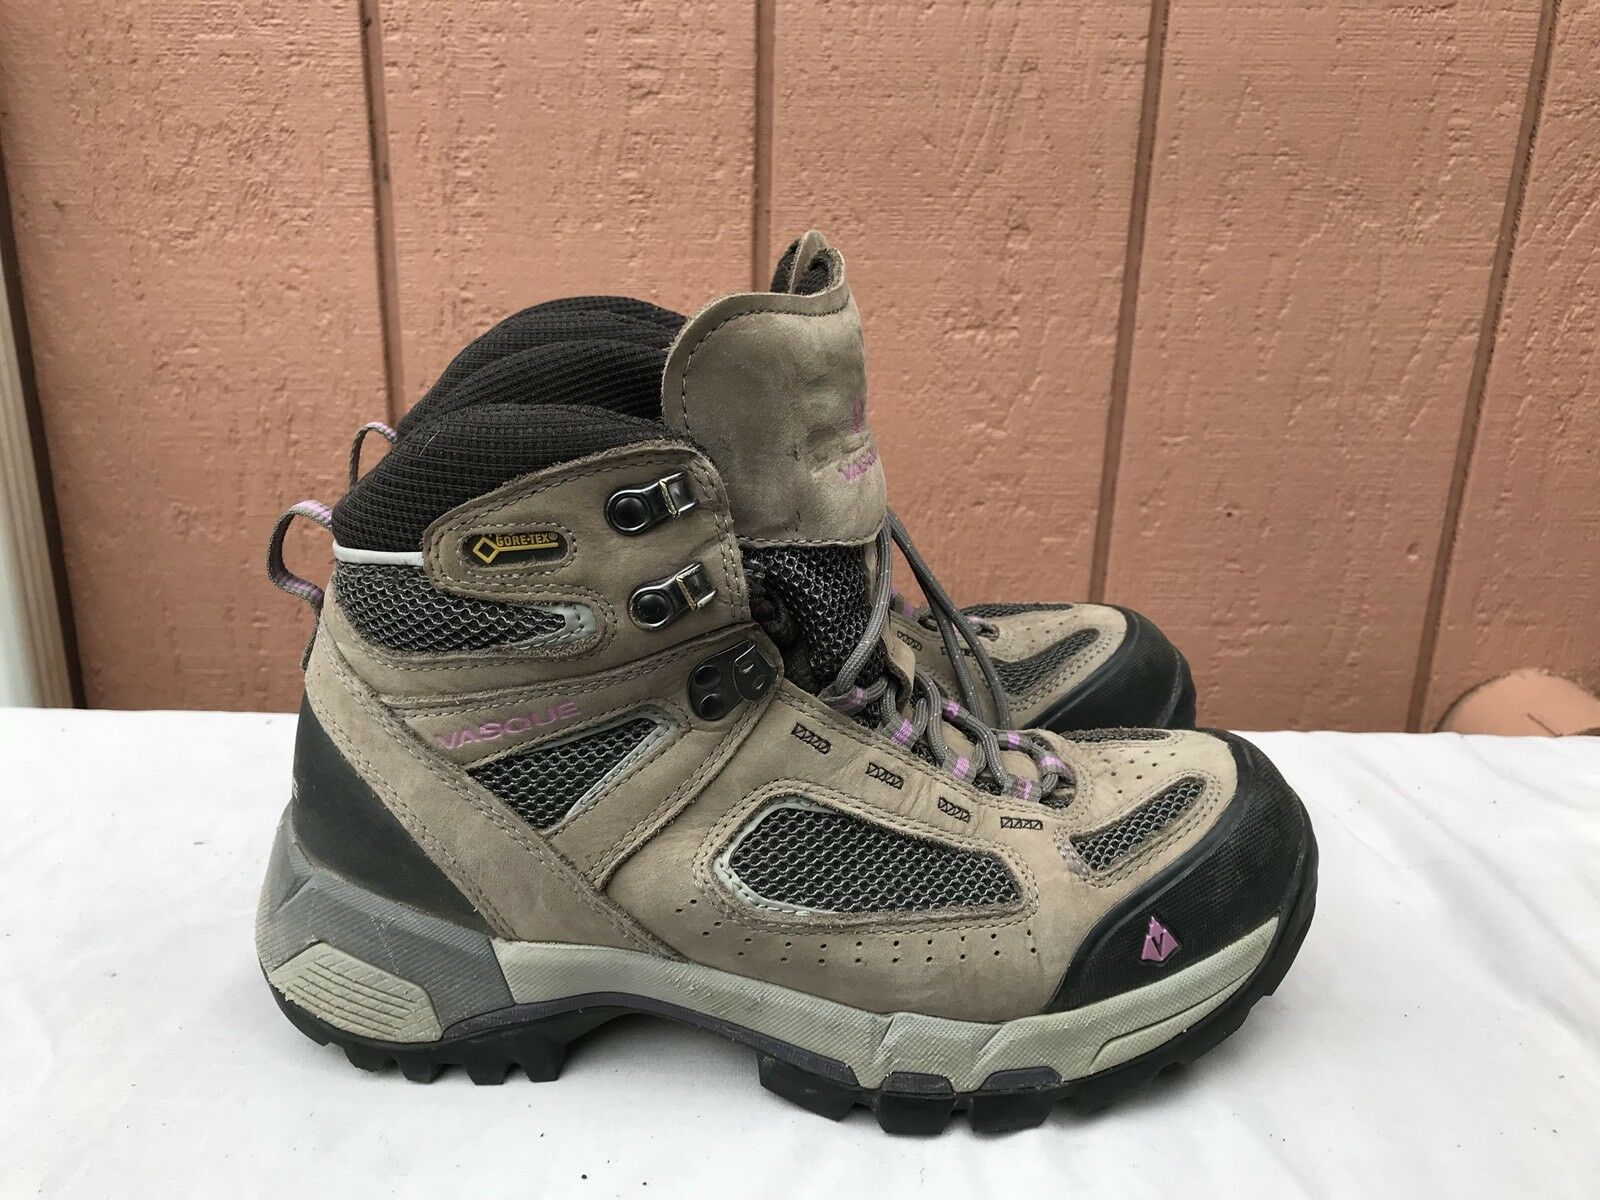 VASQUE Breeze 2.0 GTX 7479 femmes  High Top Hiking Trail Outdoor Bottes US 10 A1